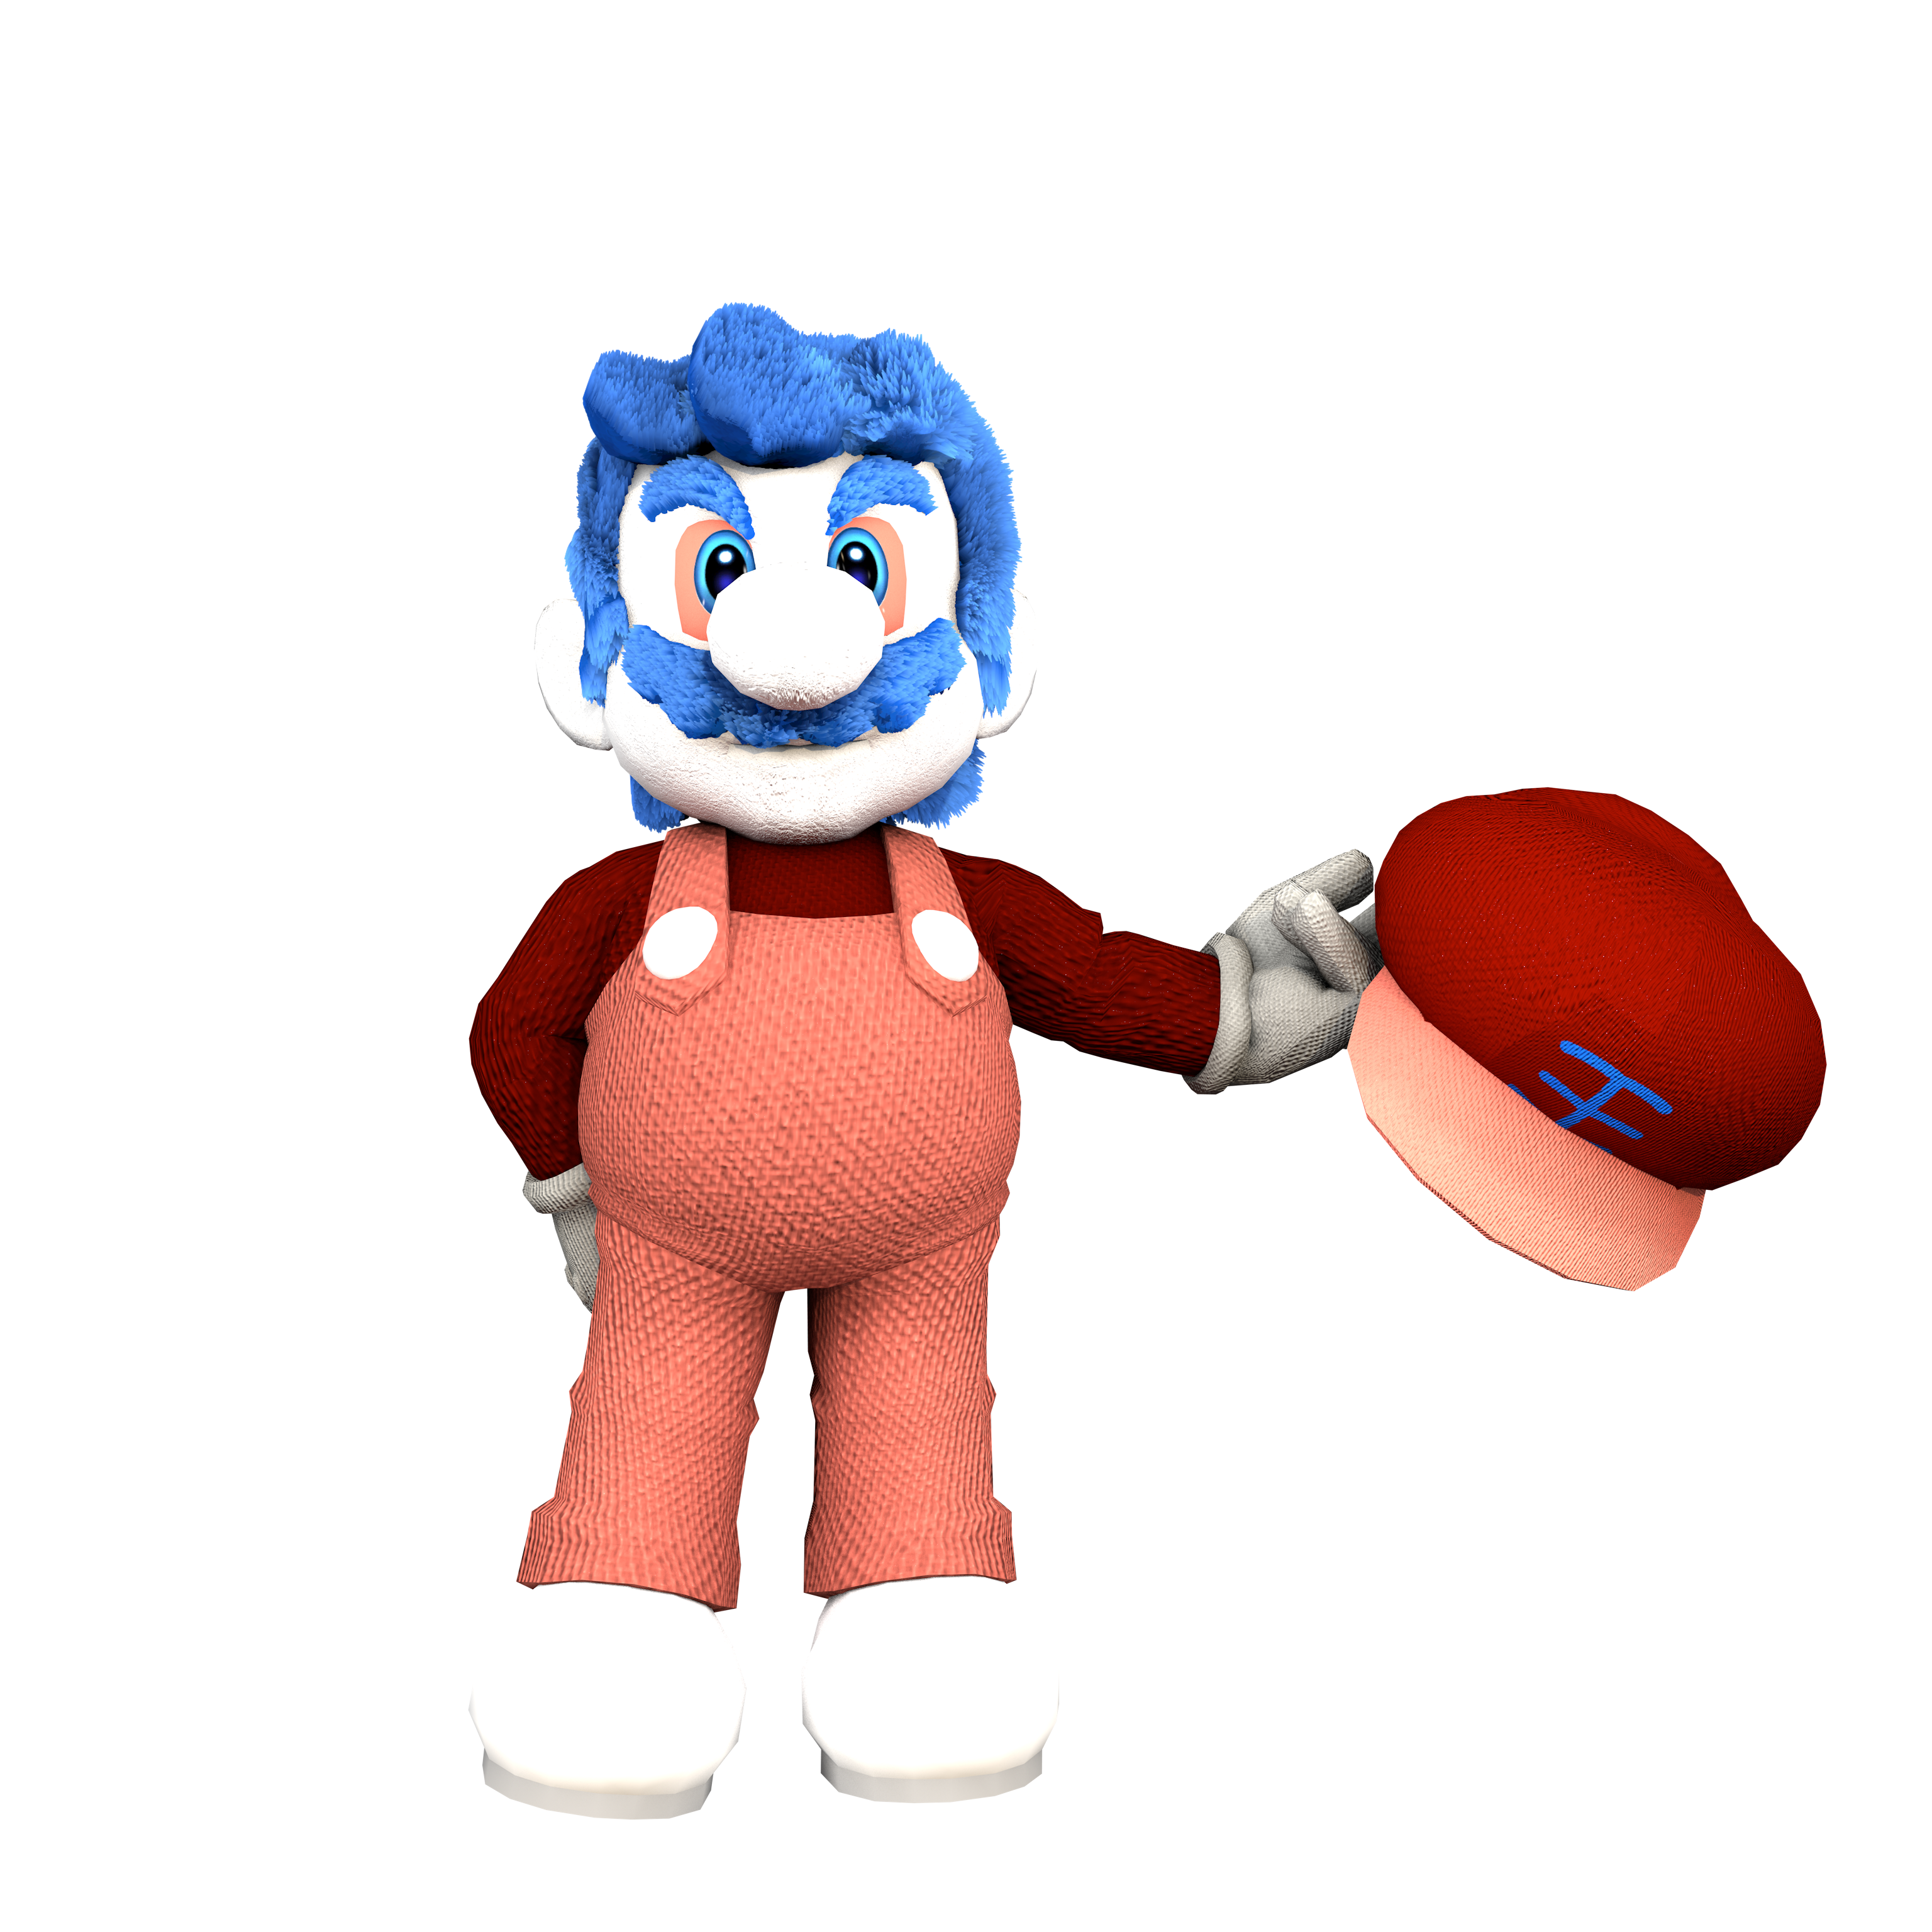 Grand dad 7 png. D high quality model